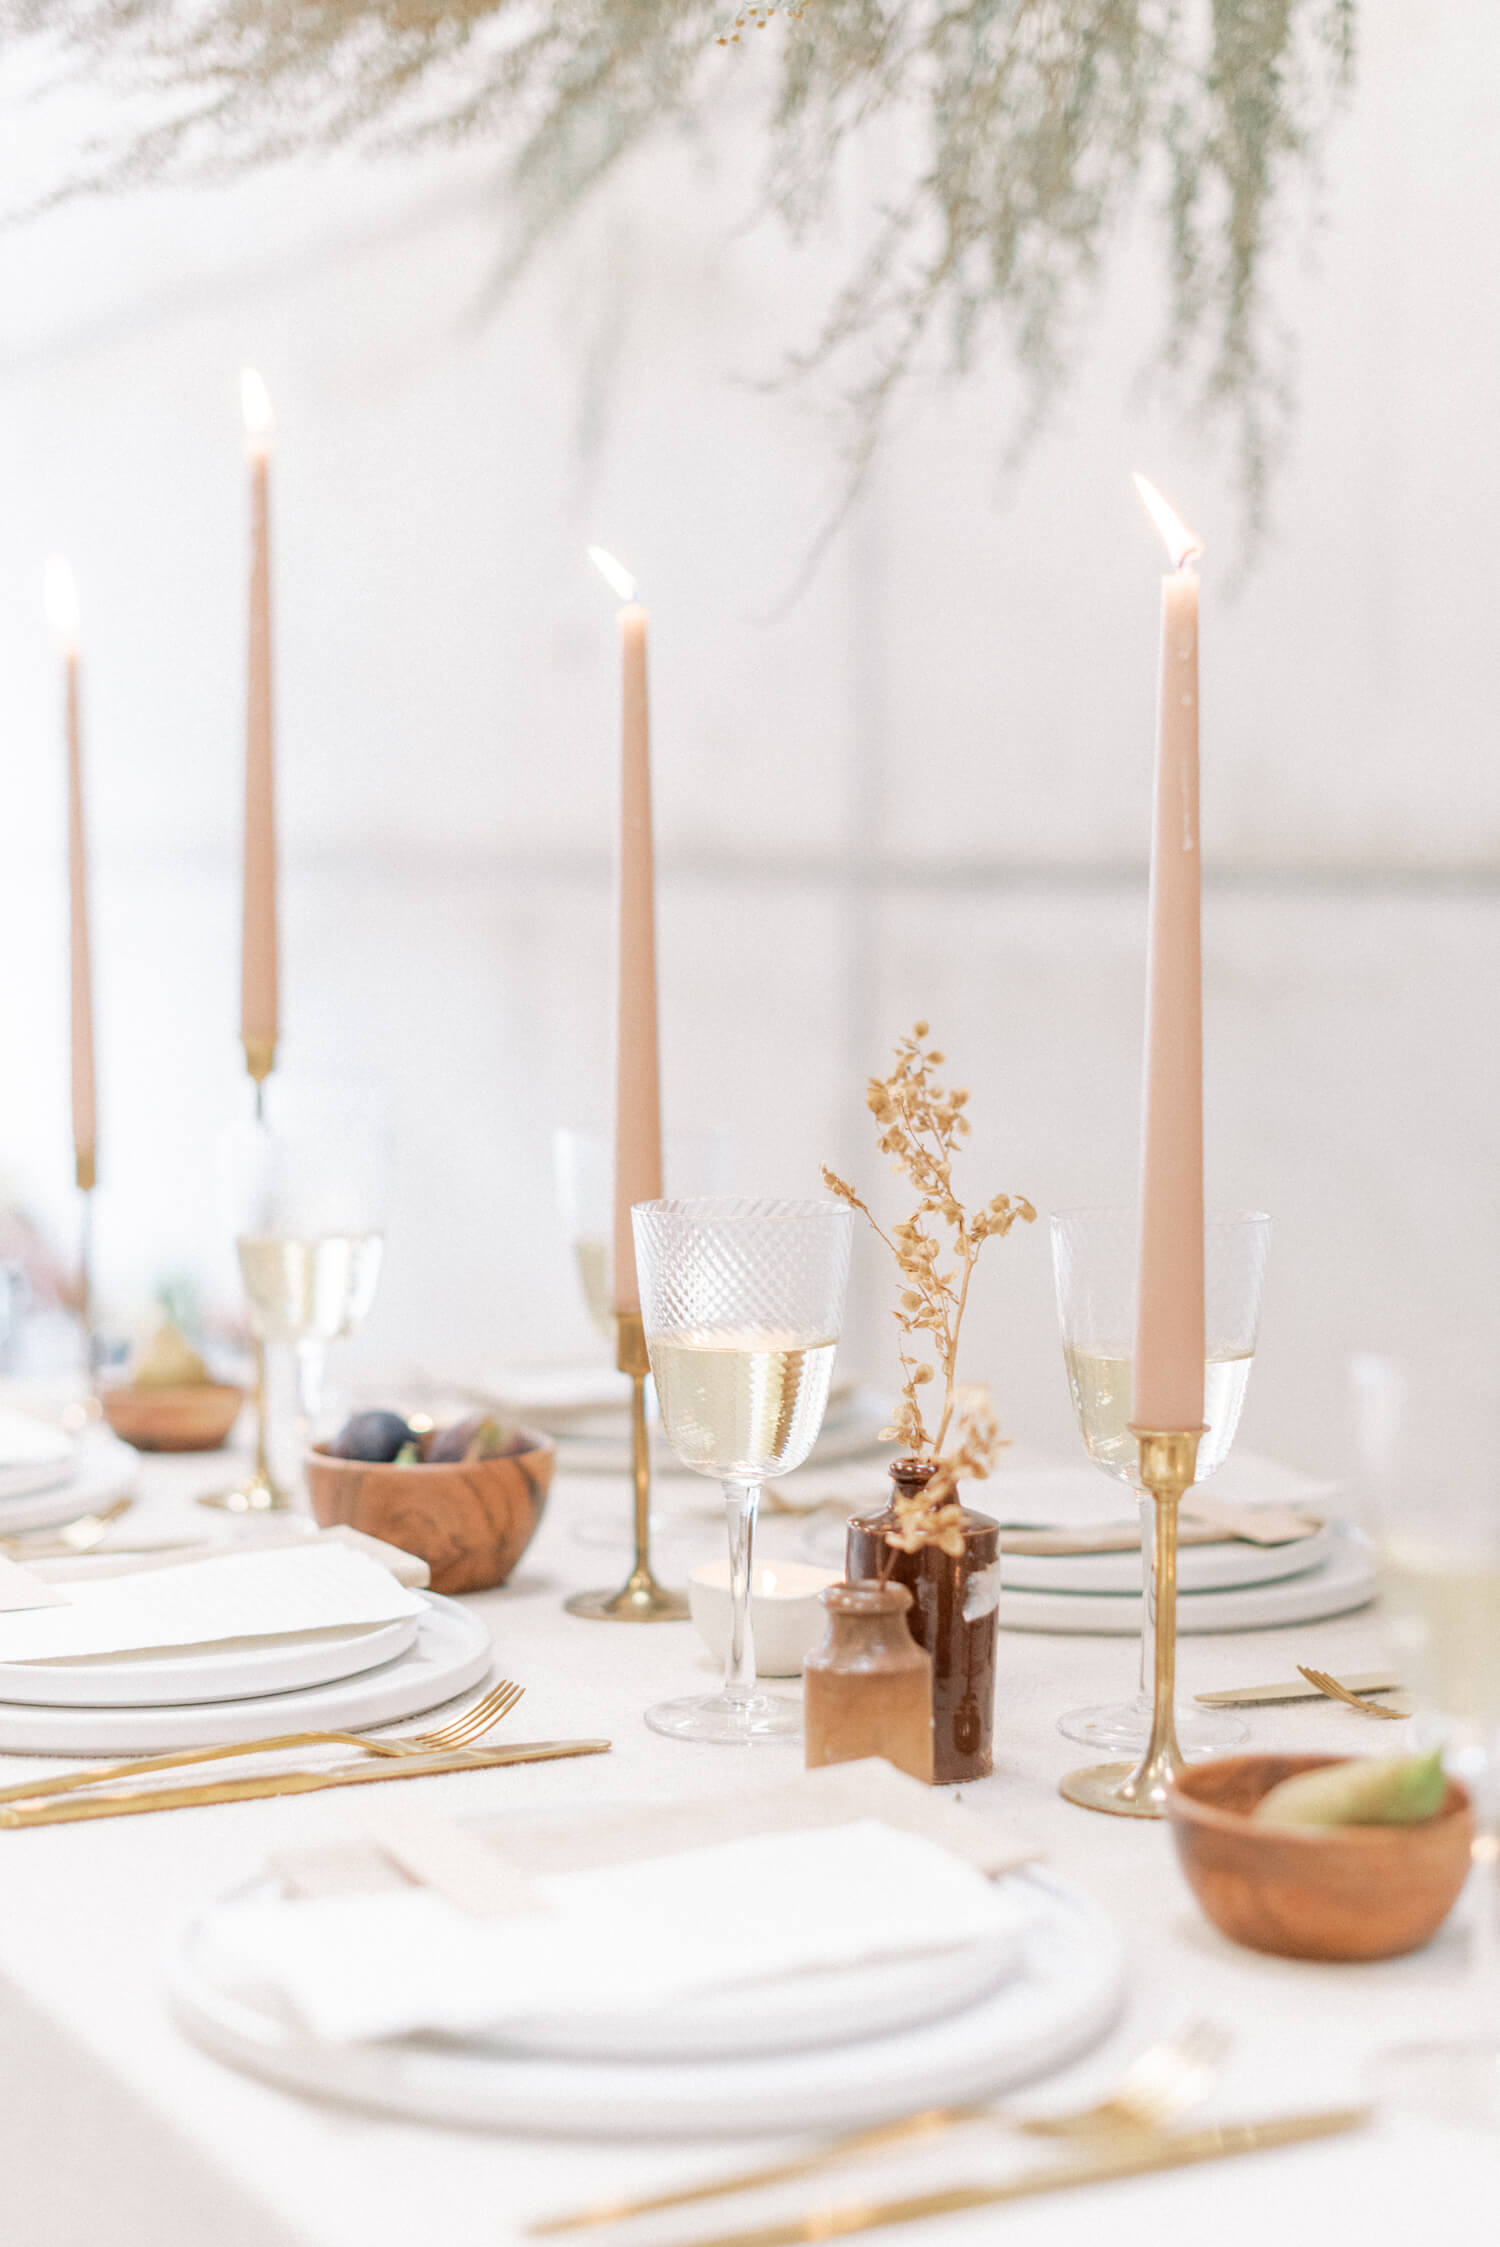 English Countryside Autumn Wedding at a Flower Farm | Photos and Text by Cristina Ilao Photography | In photo: minimalist neutral palette destination wedding table setup